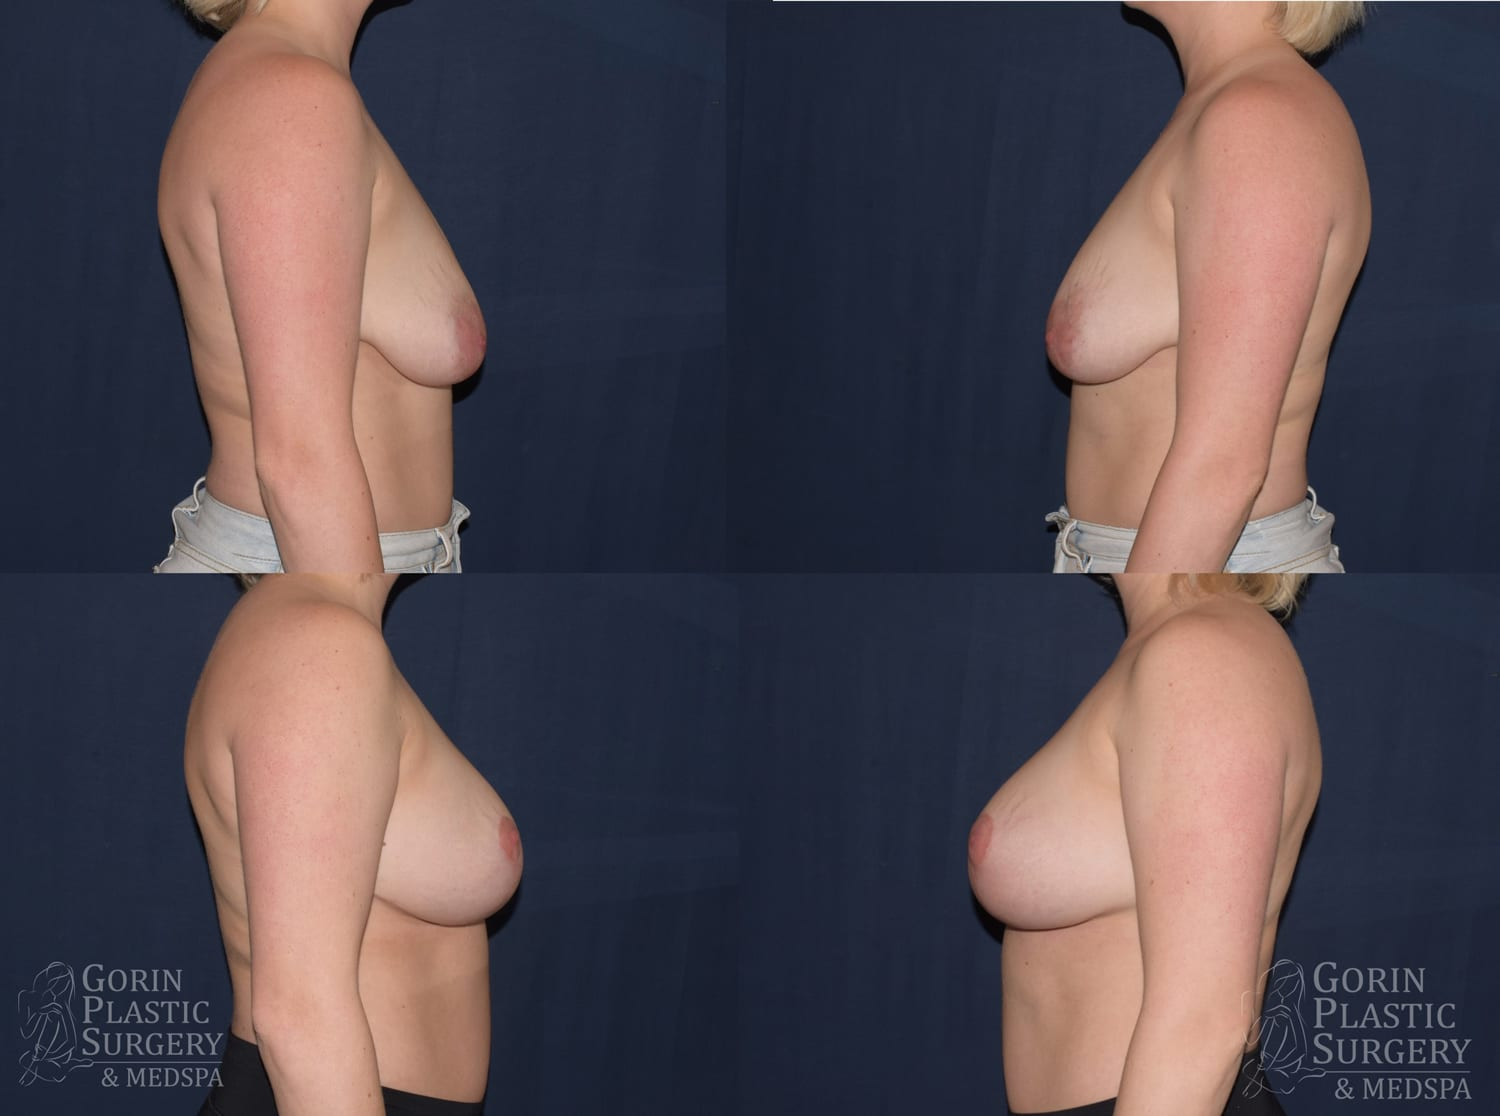 before after mastopexy breast augmentation at dr gorin plastic surgery side view jan 2020